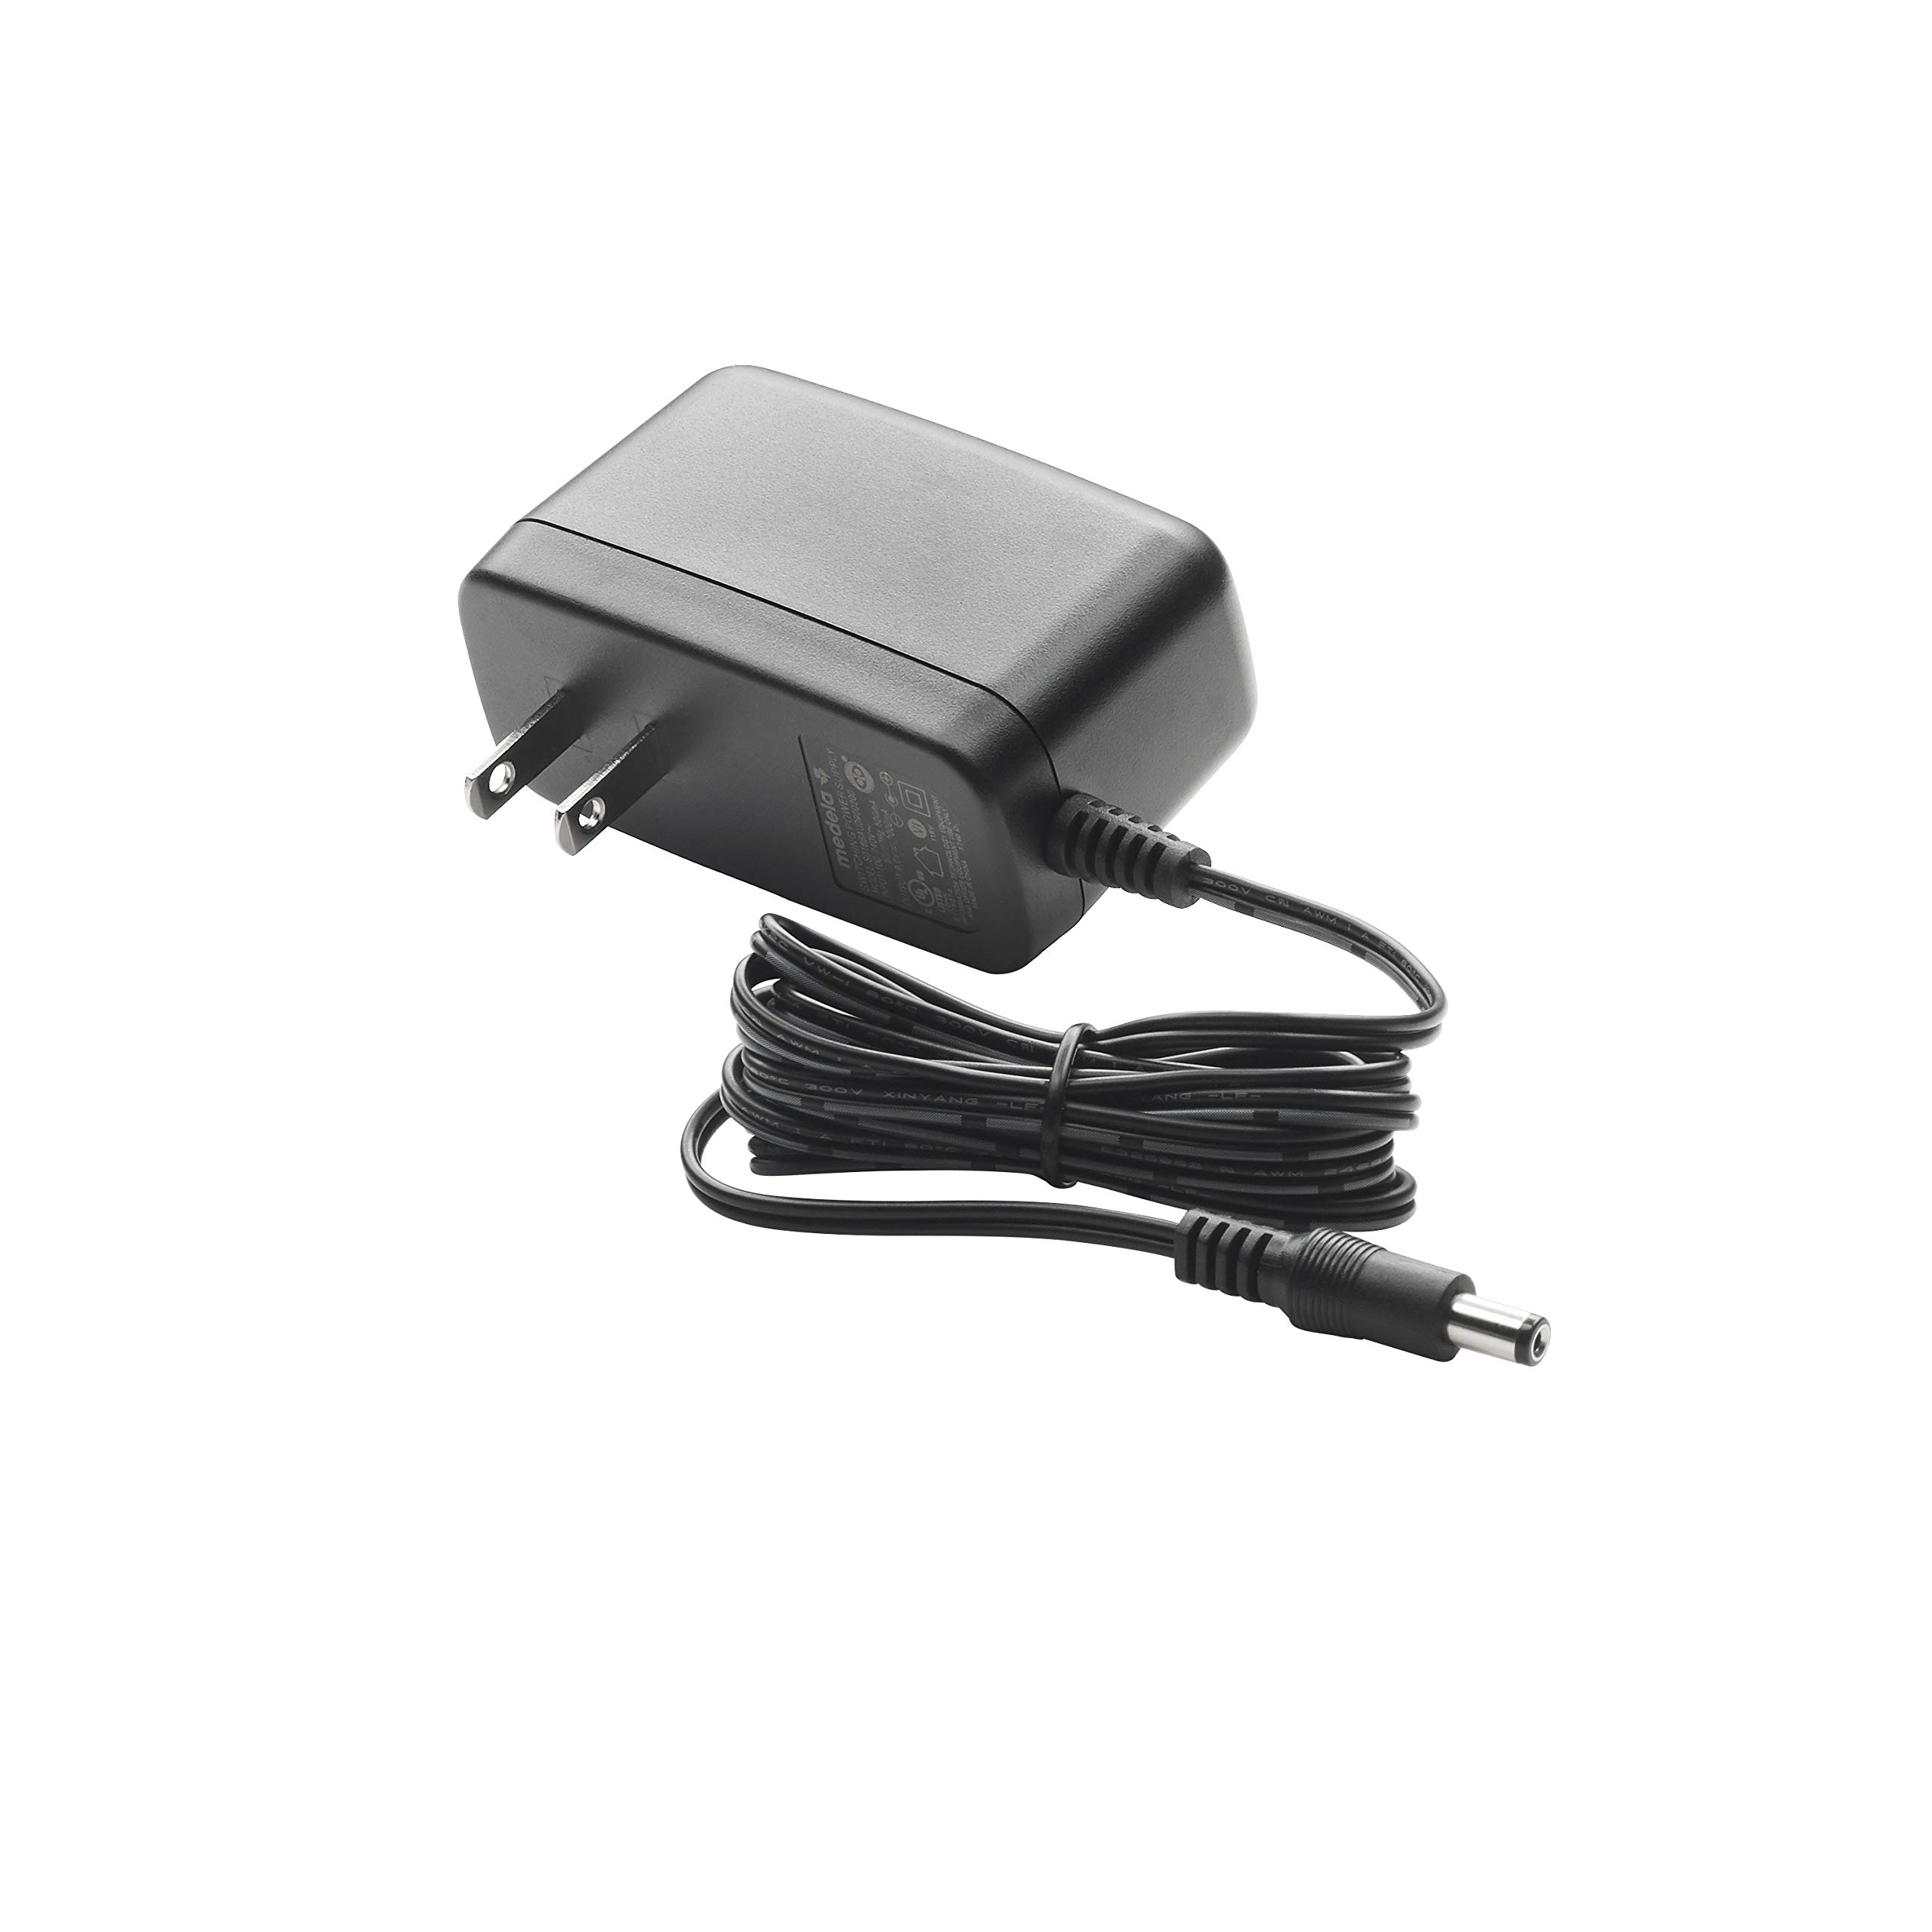 Medela Pump in Style Advanced Power Adaptor, Dual Voltage 110-240V Power Supply Cord for International Use, Authentic Medela Spare Part for 9V Pump in Style Breastpumps by Medela